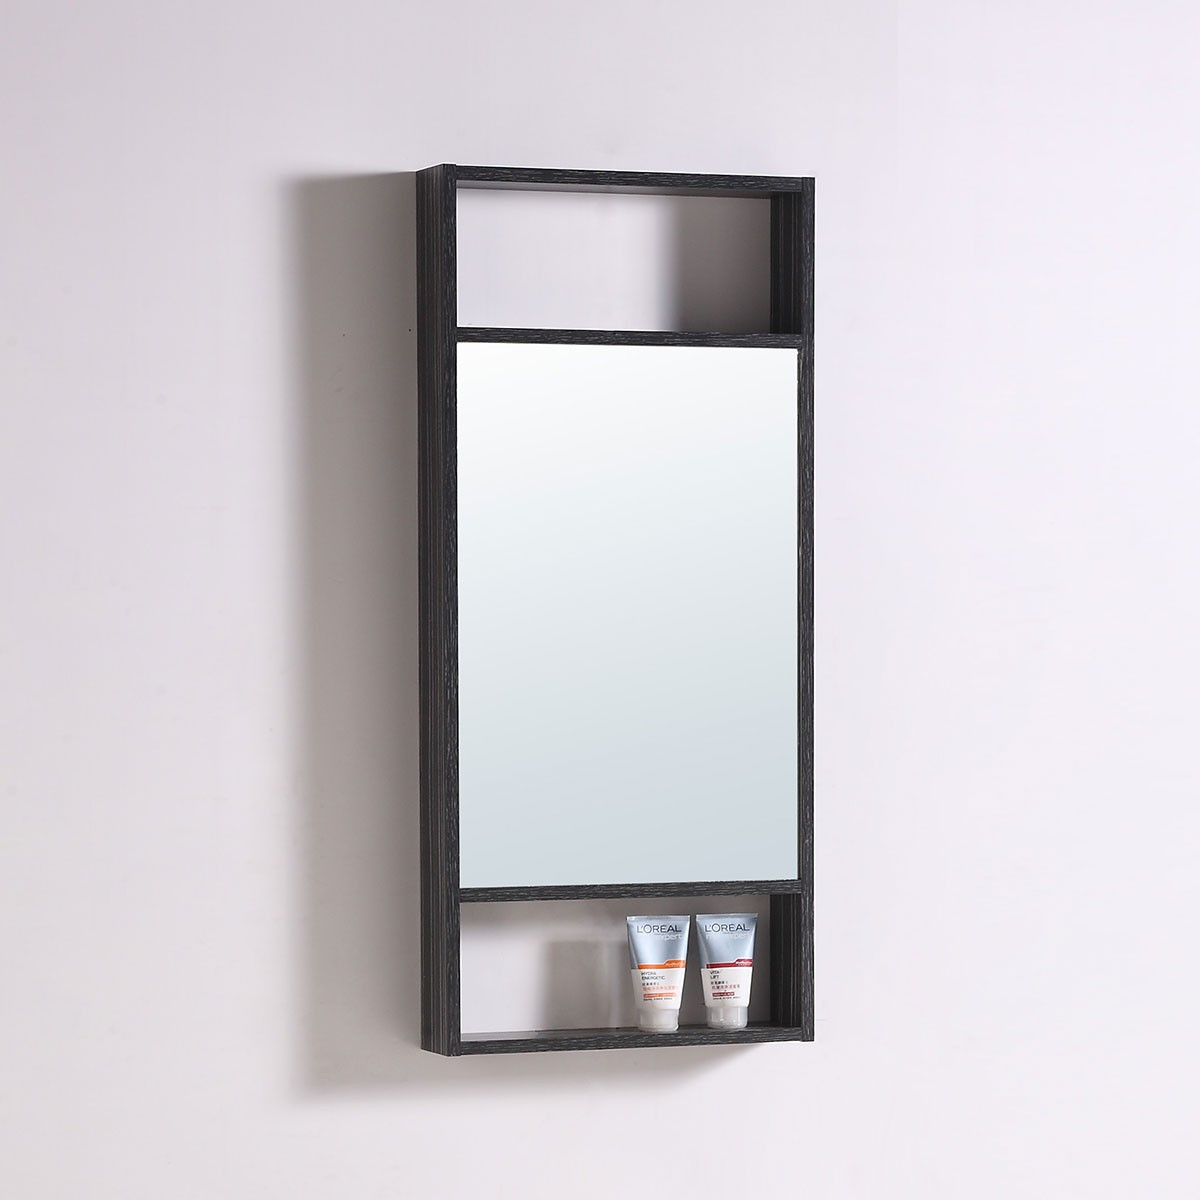 20 x 28 In. Mirror with Black Frame (DK-TH21302A-M)